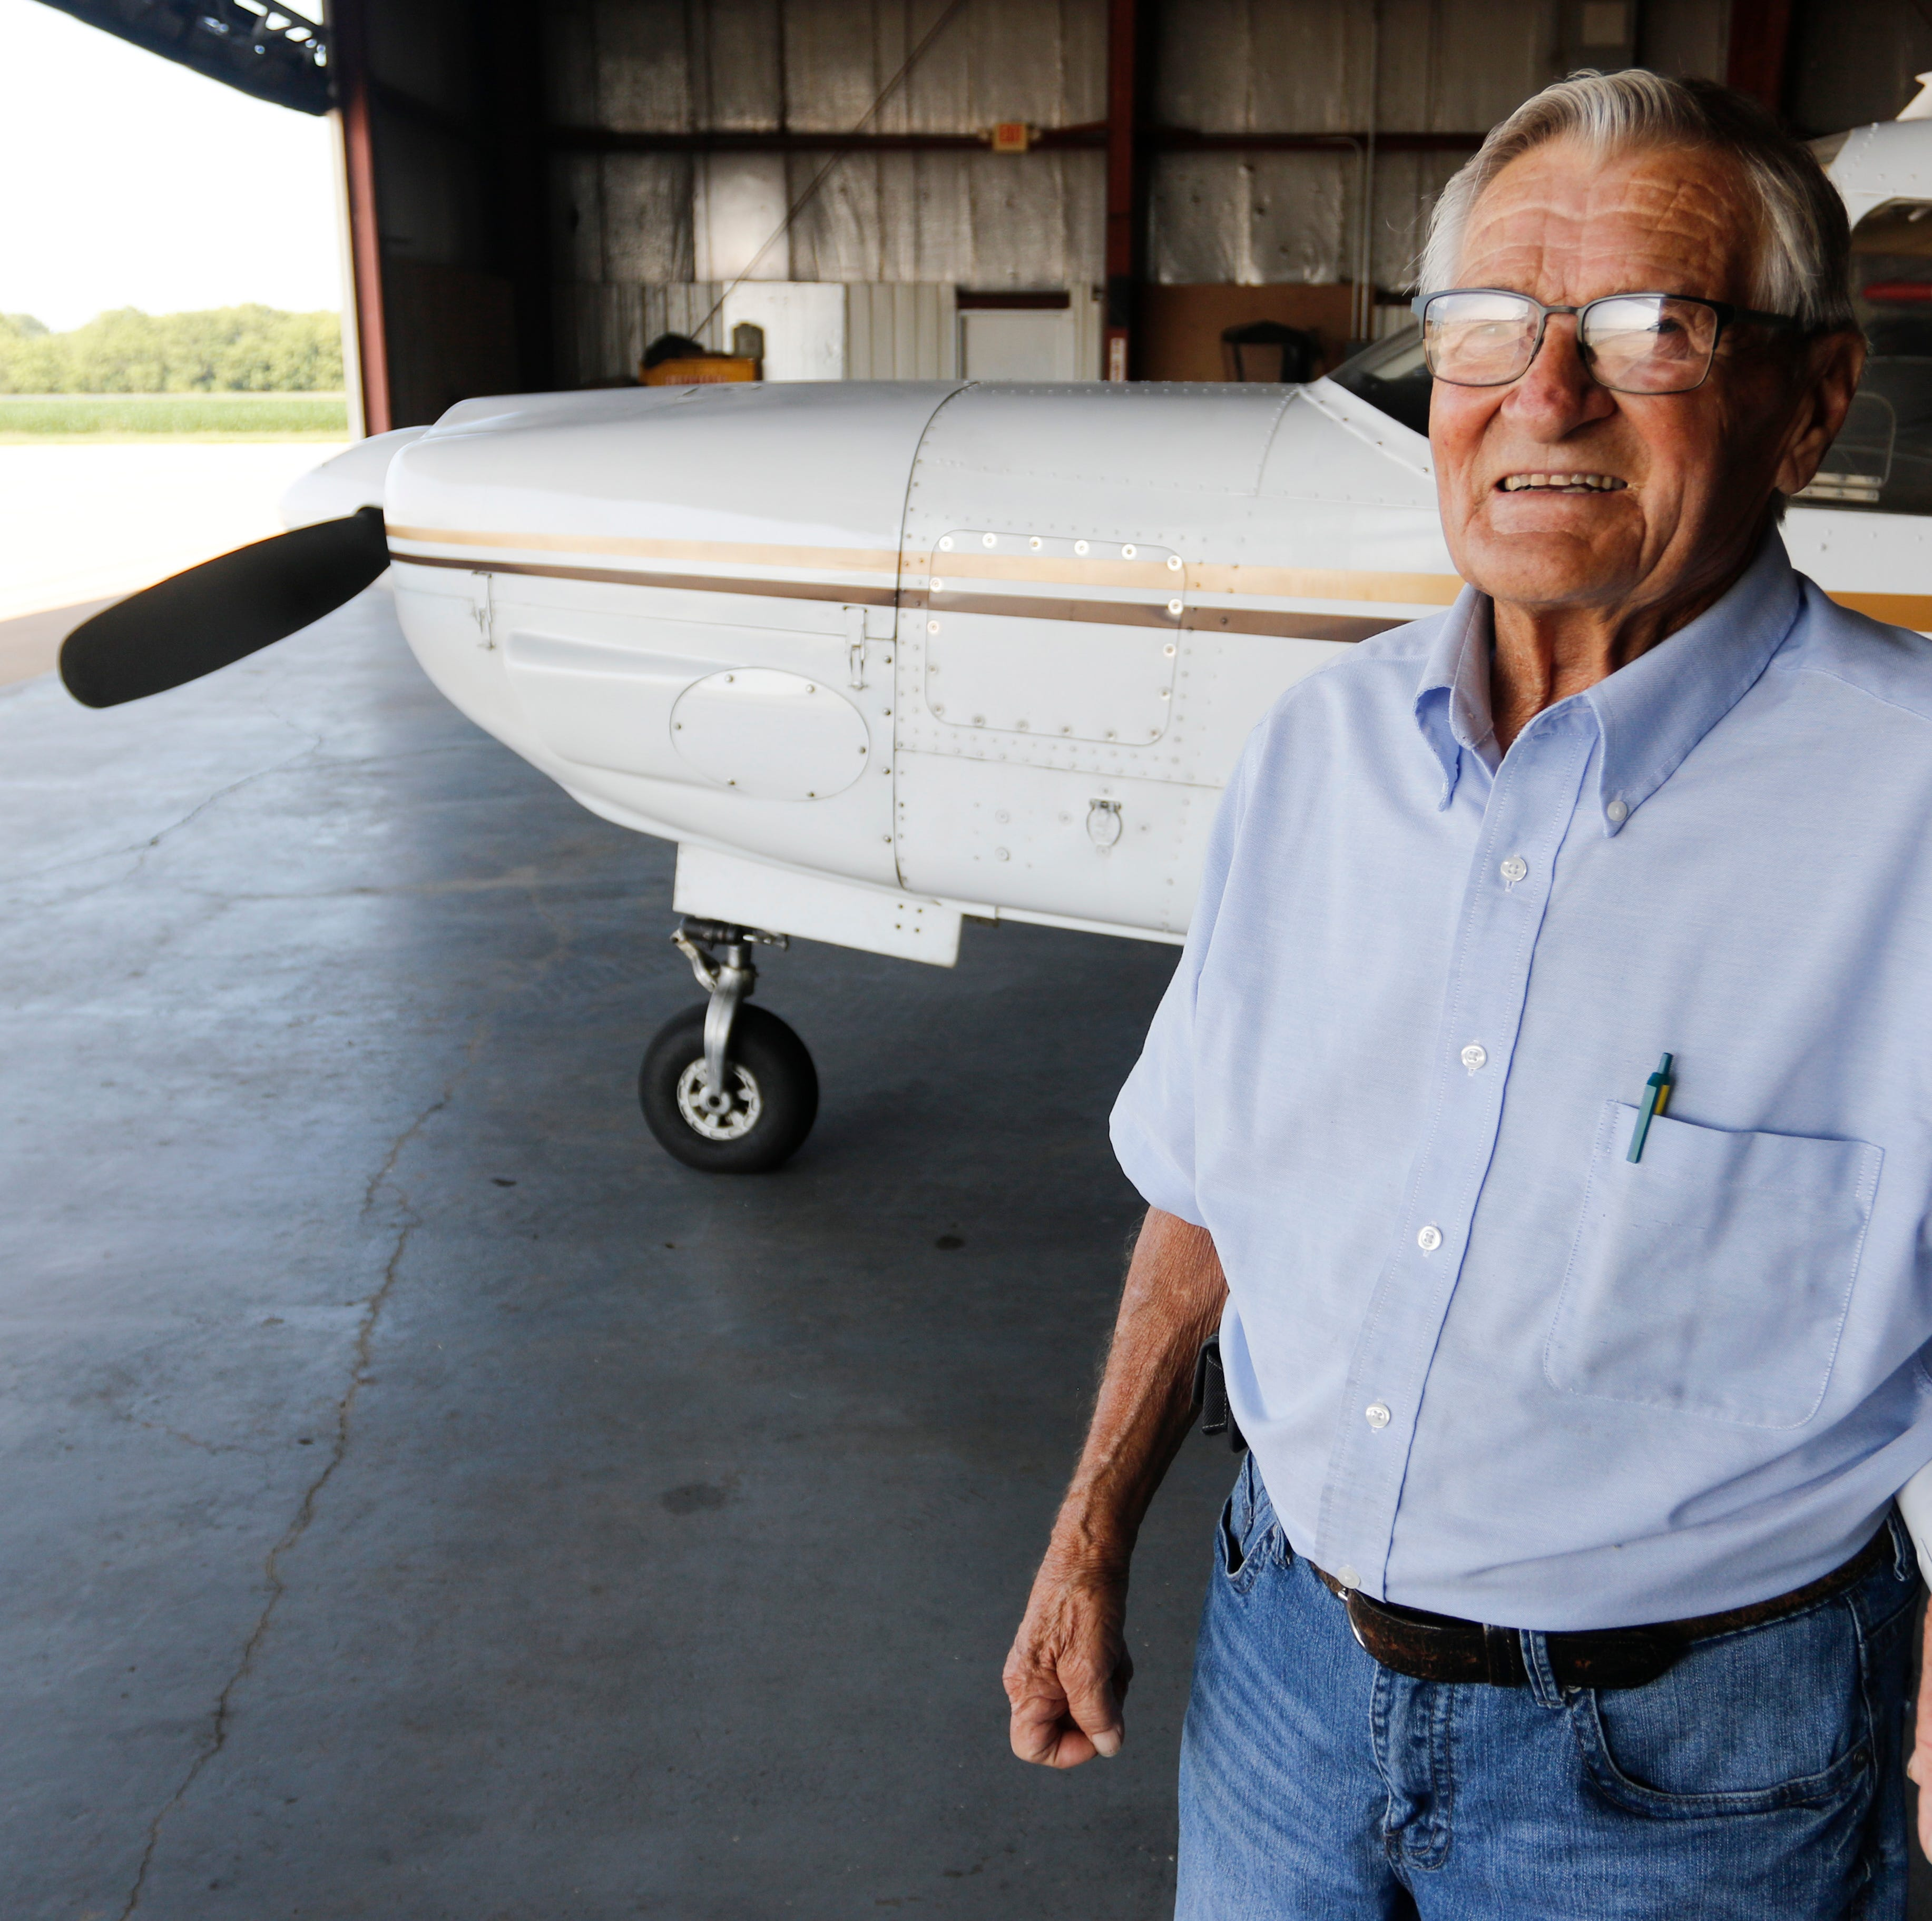 Family that flies together, stays together: For them, Marshfield Airport a family affair